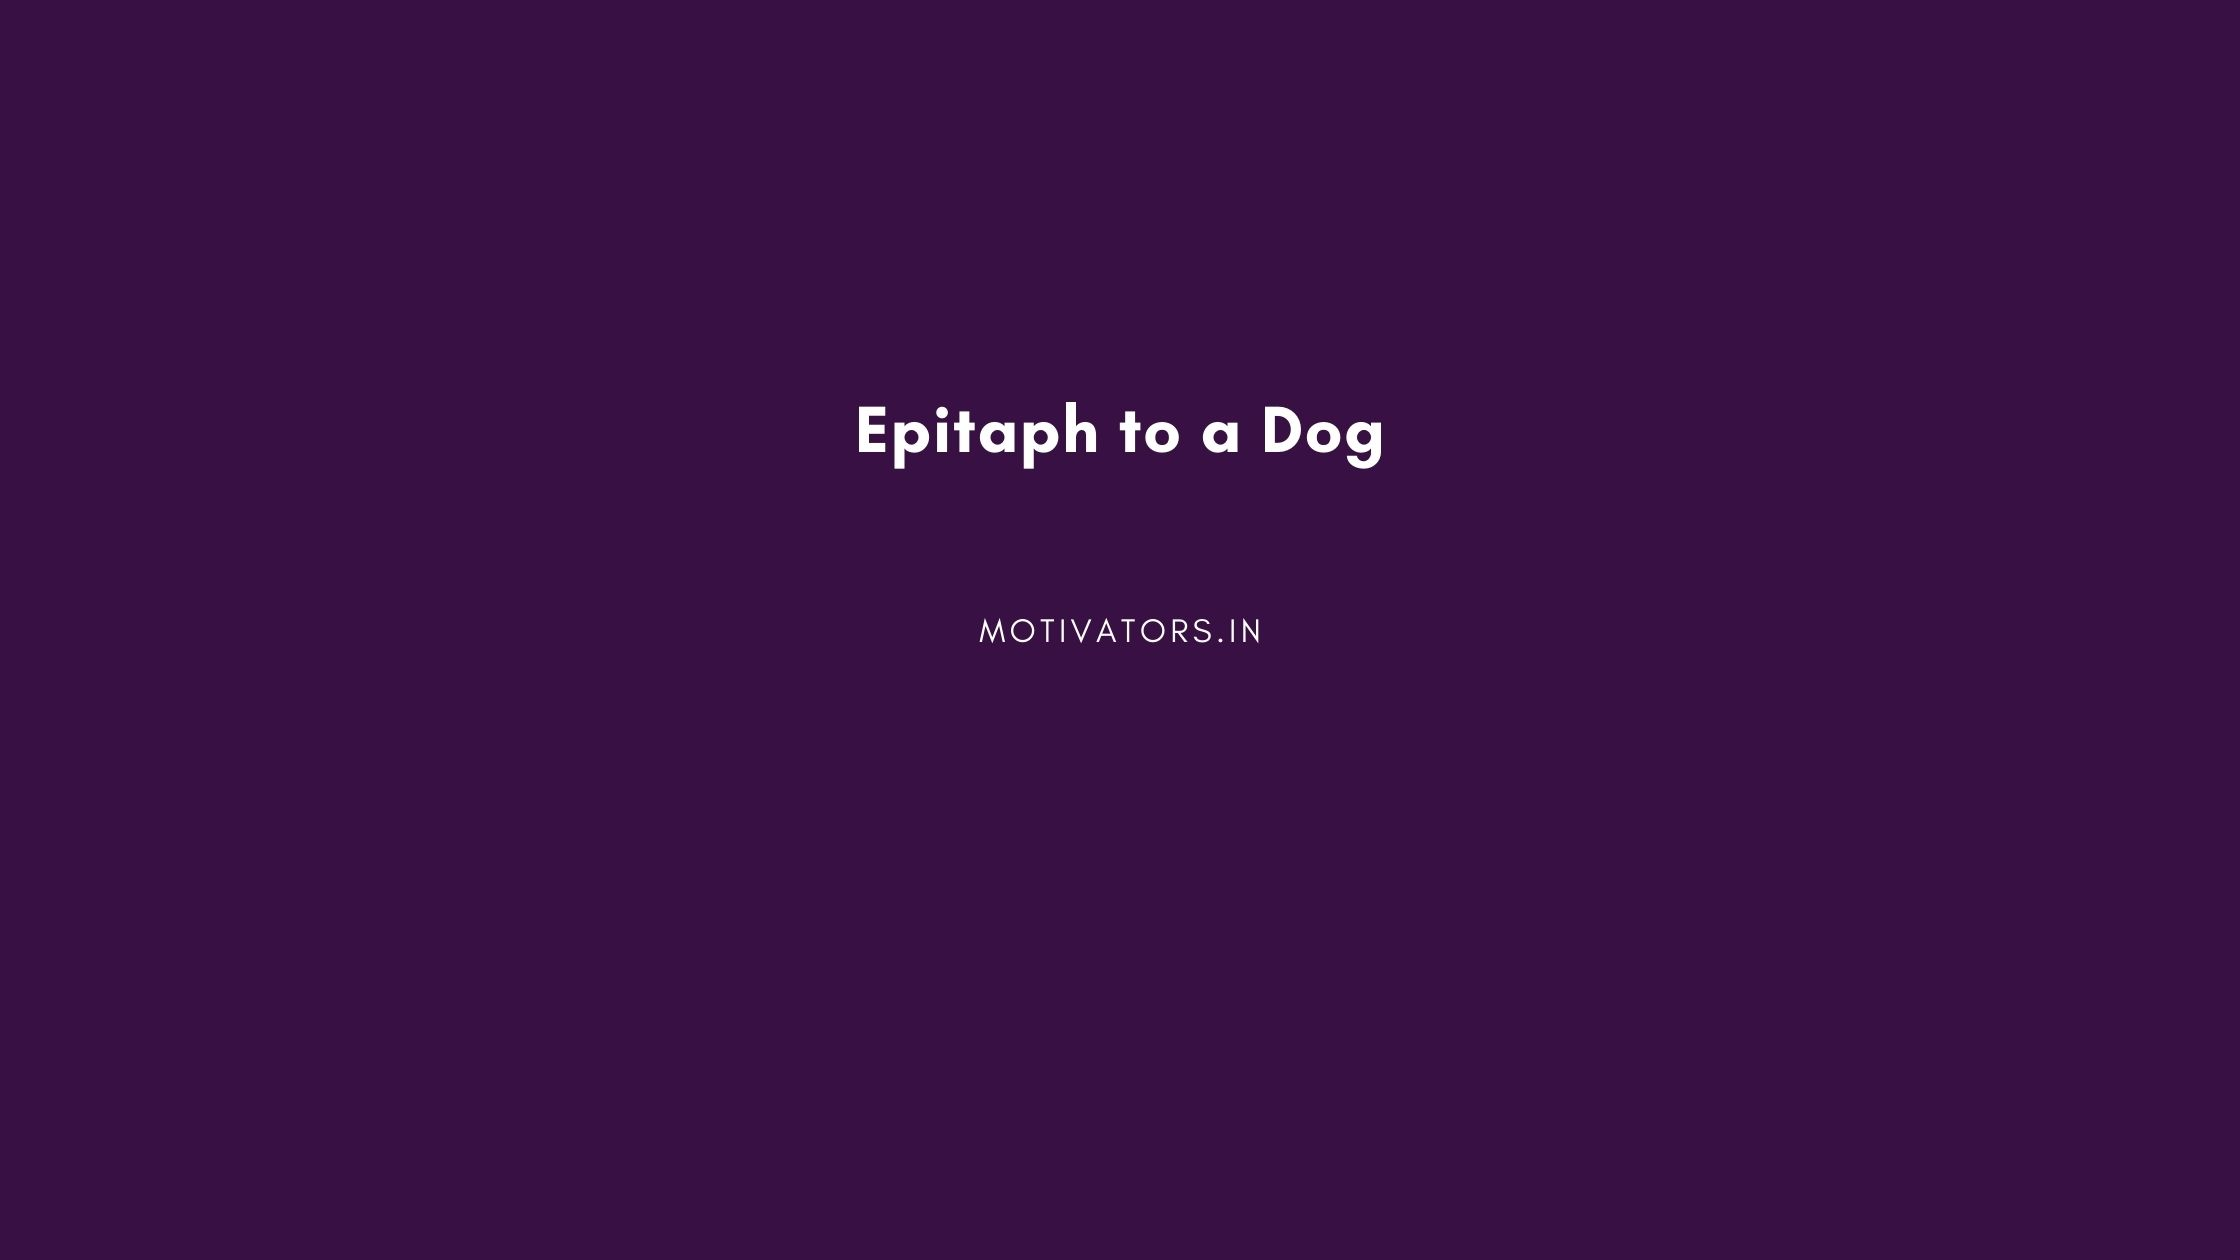 Epitaph to a Dog